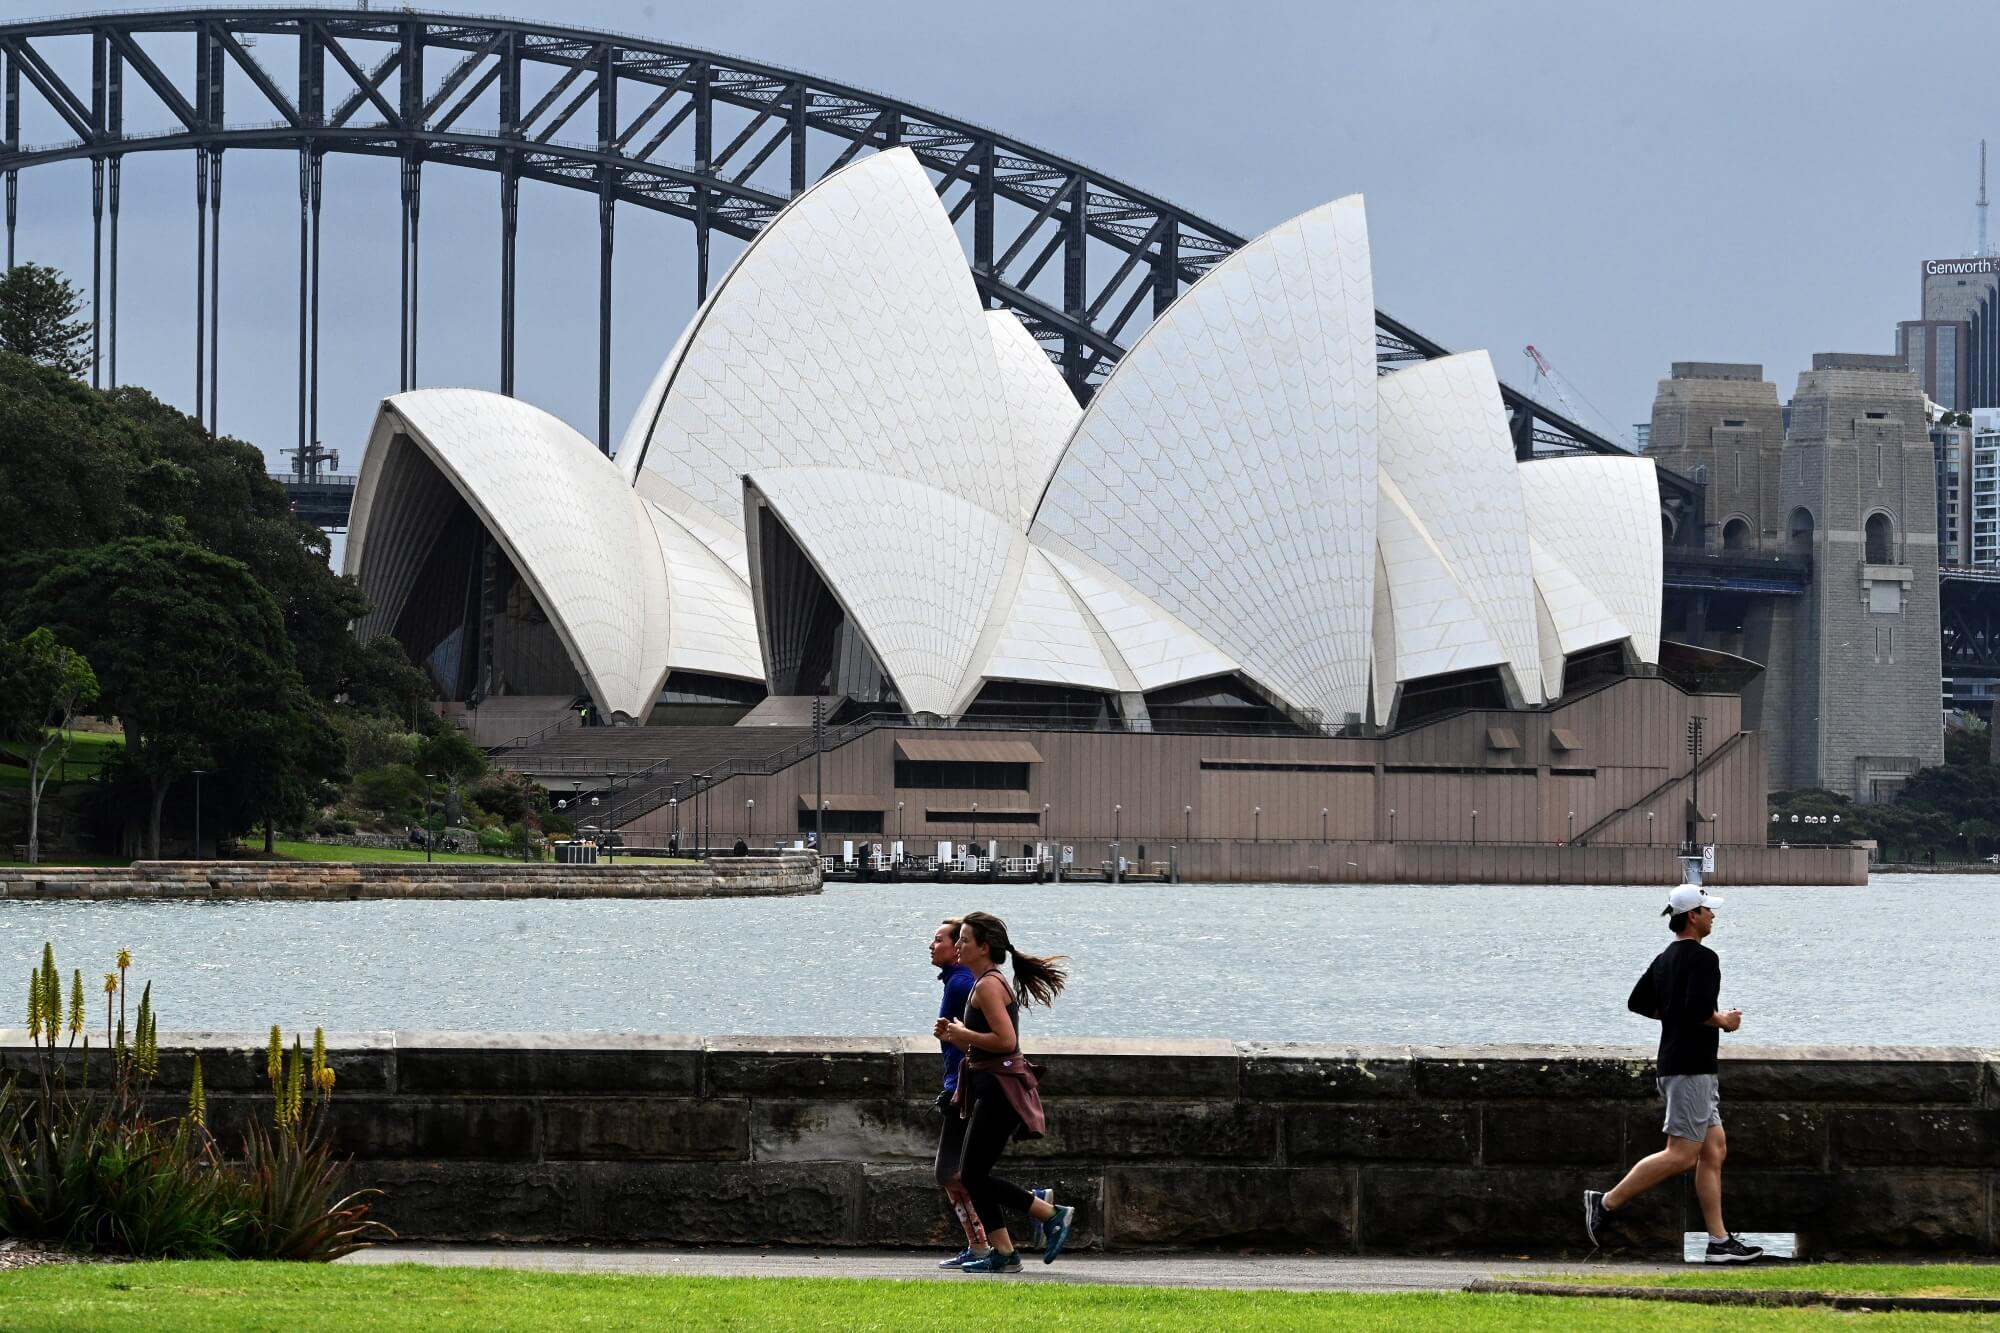 Australia: Limited flights could derail travel to NSW